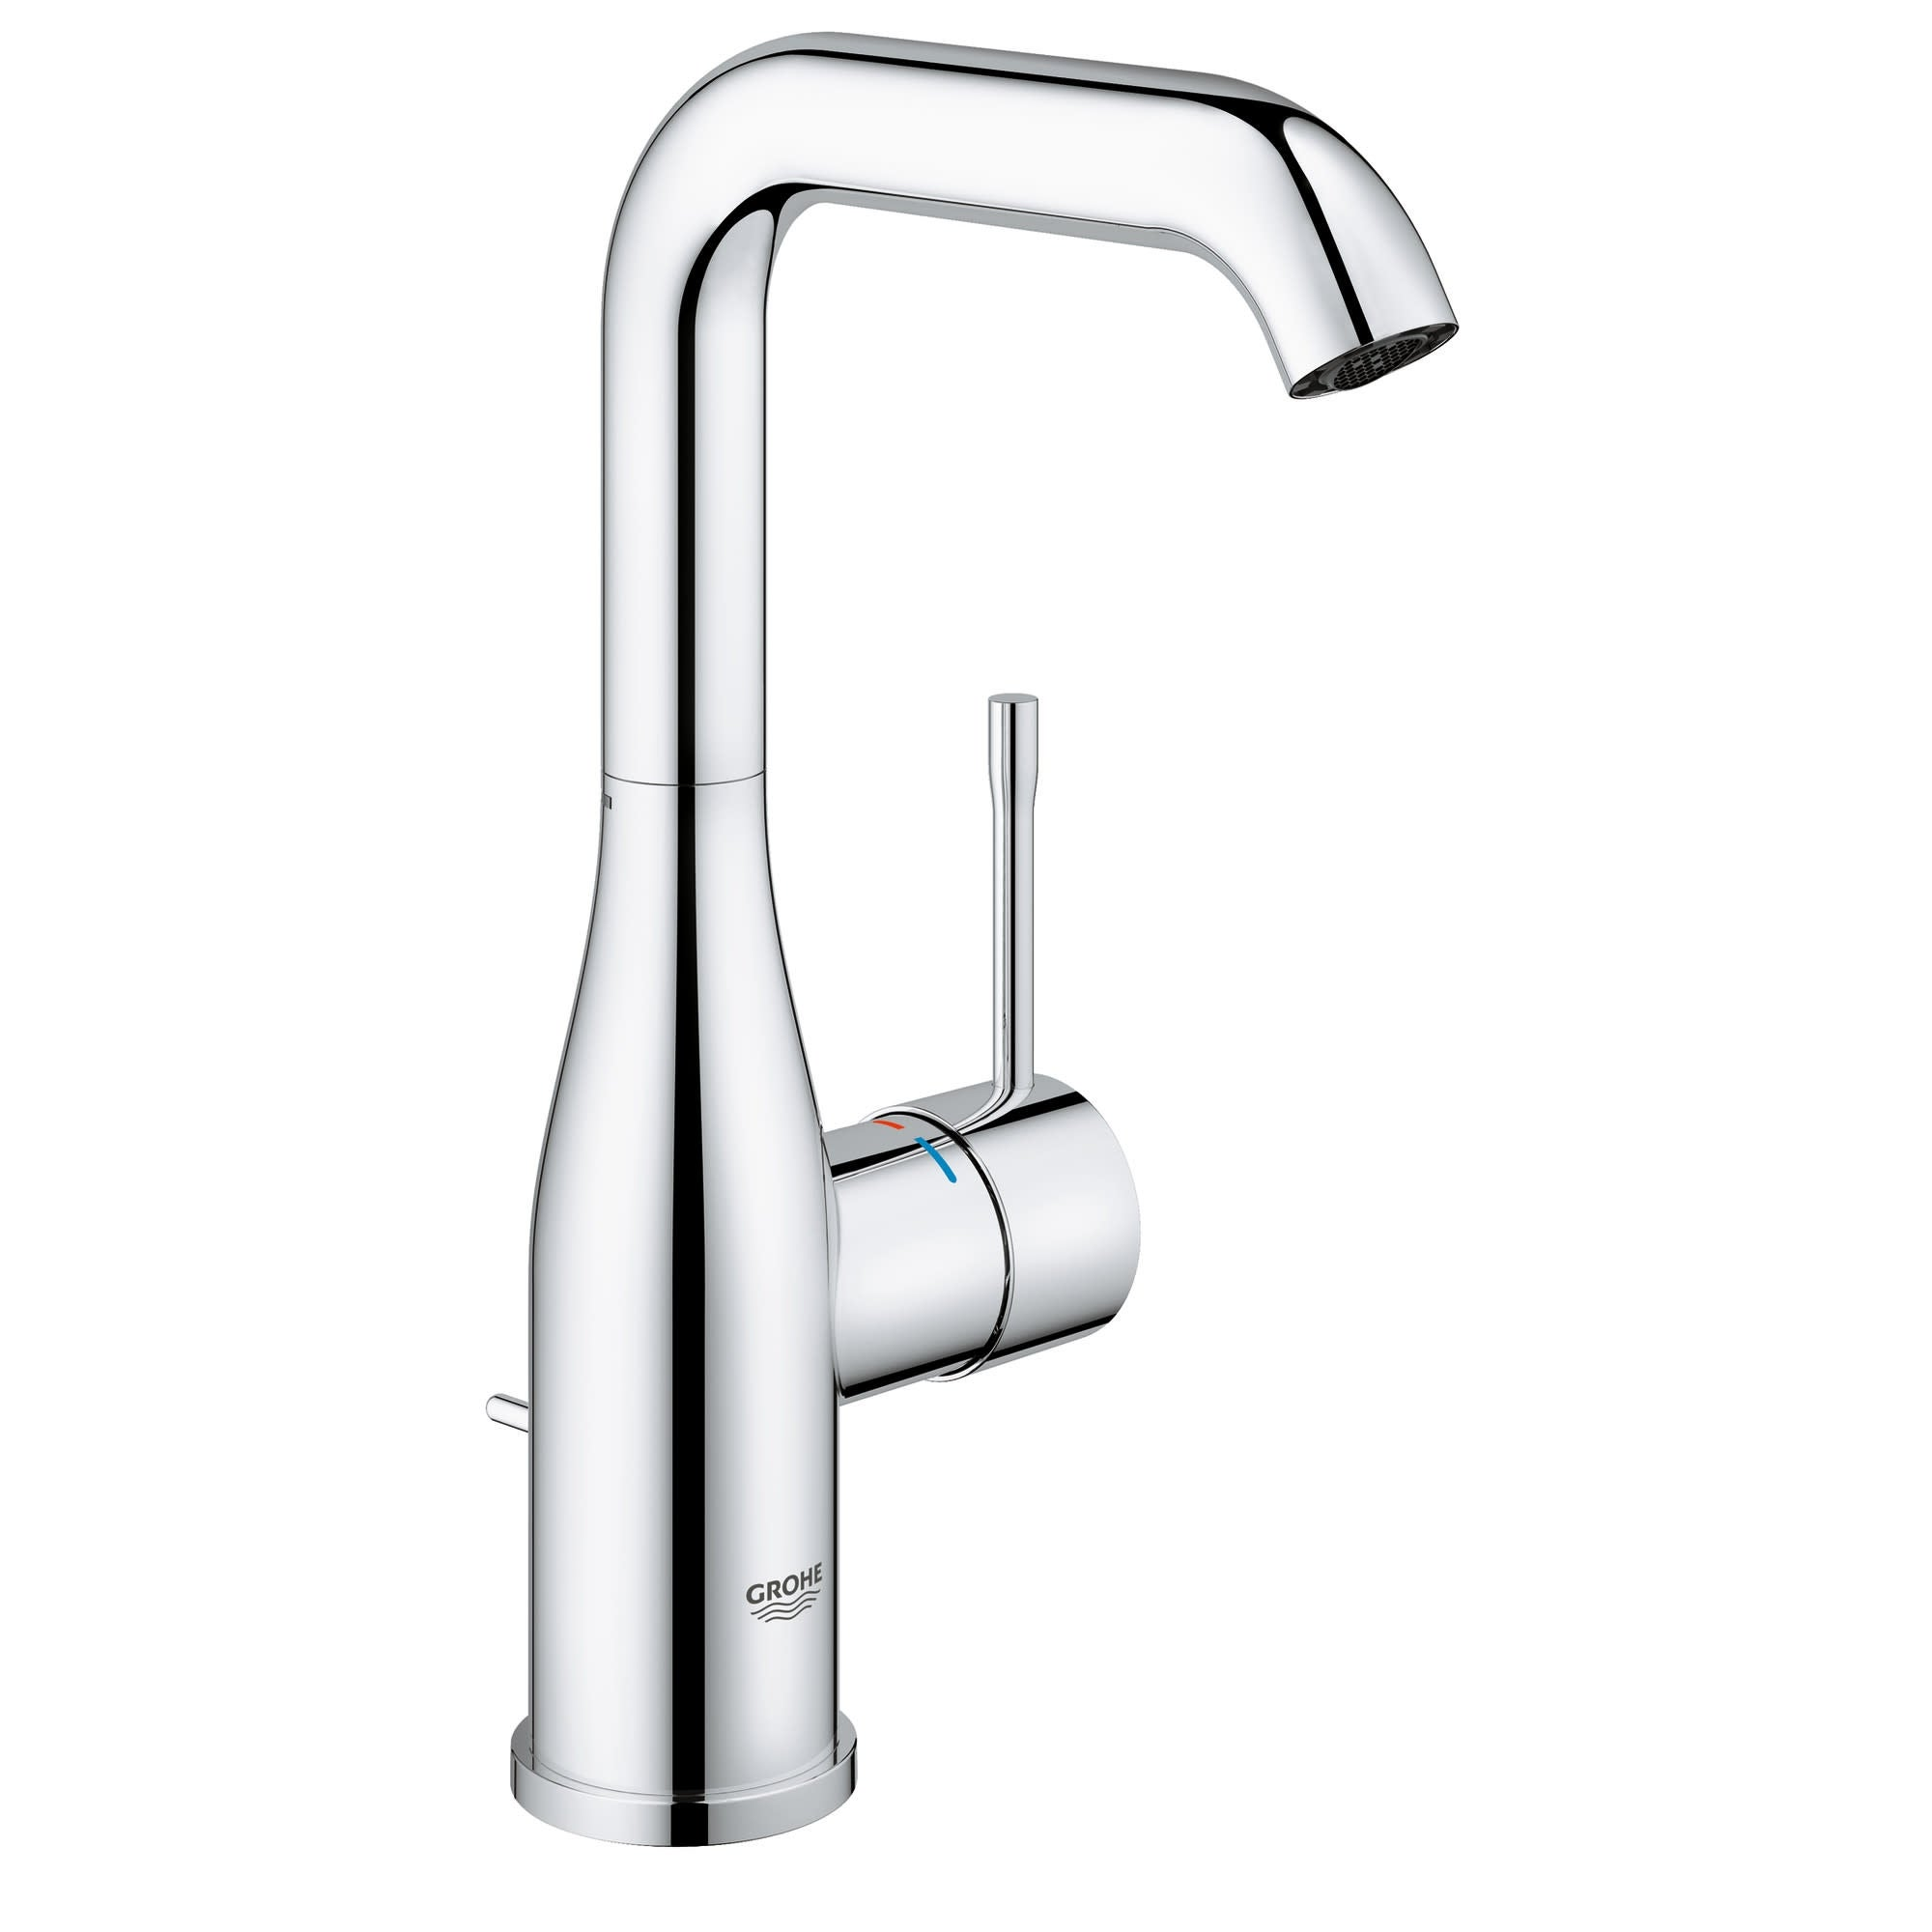 Essence New grifo Lavabo Vaciad Silkmovees Grohe